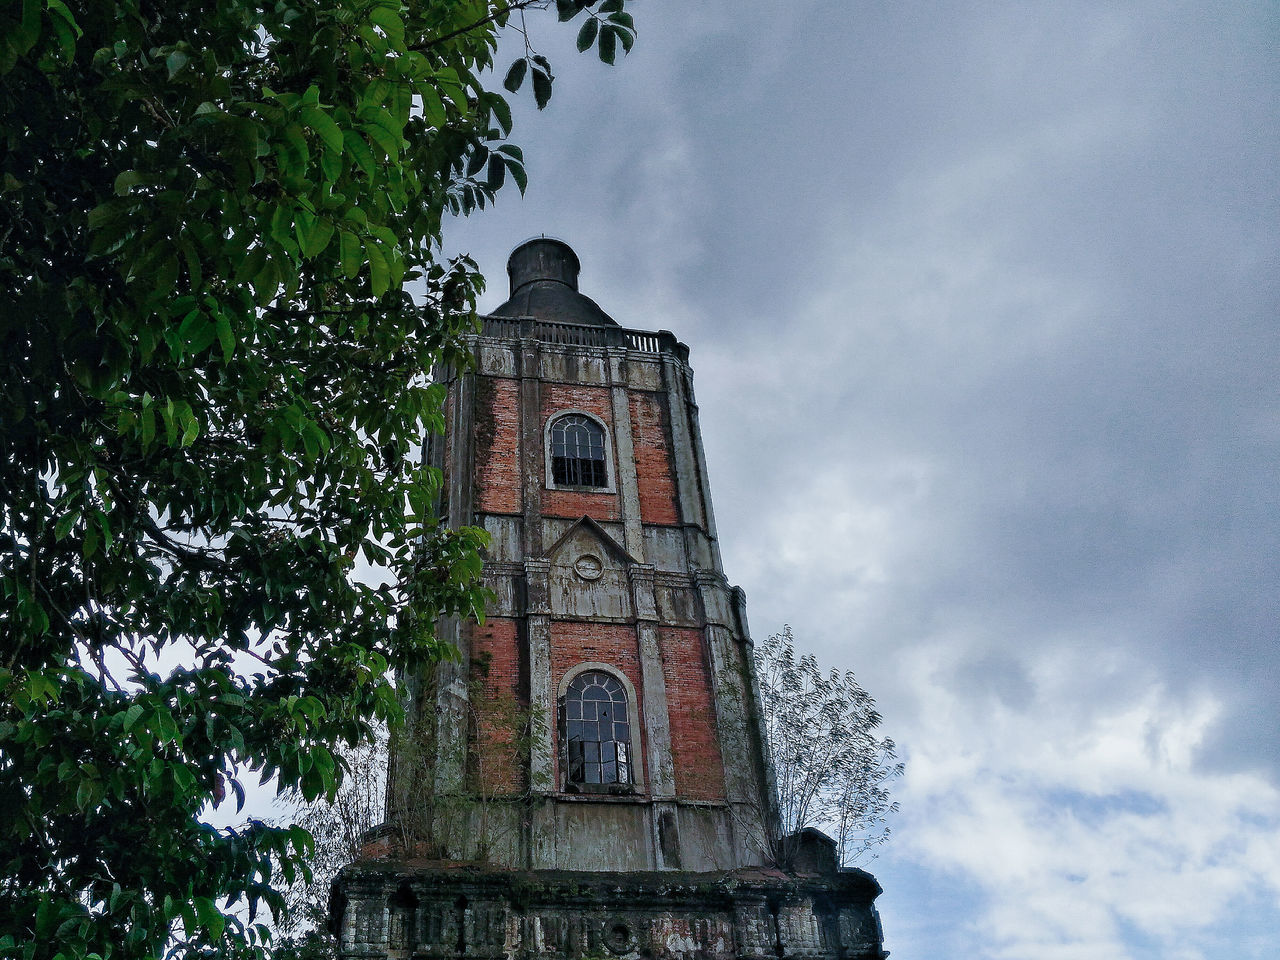 religion, sky, place of worship, spirituality, architecture, cloud - sky, low angle view, tree, history, day, no people, outdoors, built structure, bell tower, building exterior, clock tower, nature